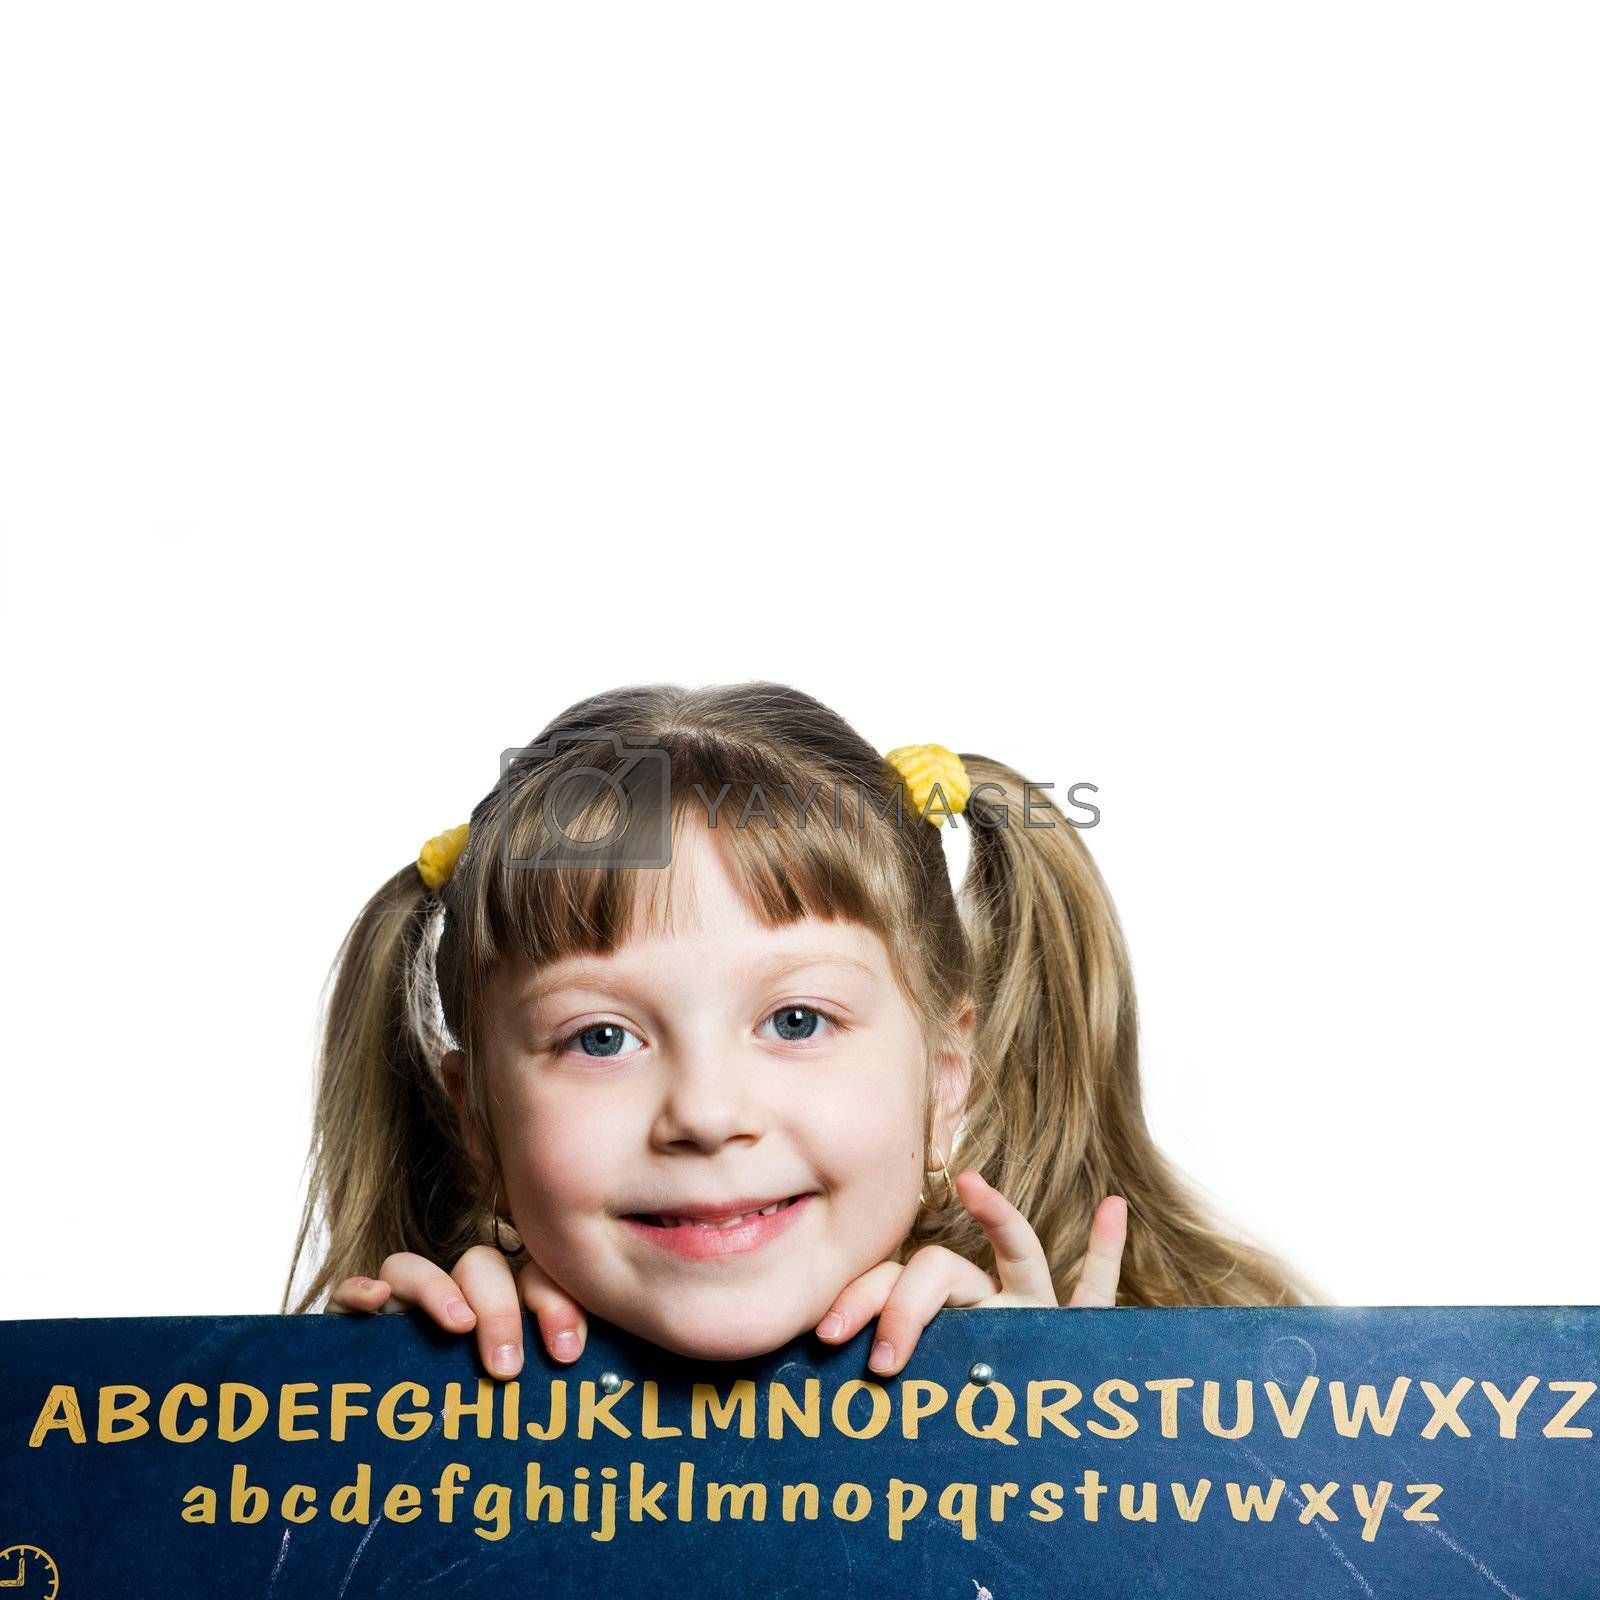 An image of a smiling girl and blackboard